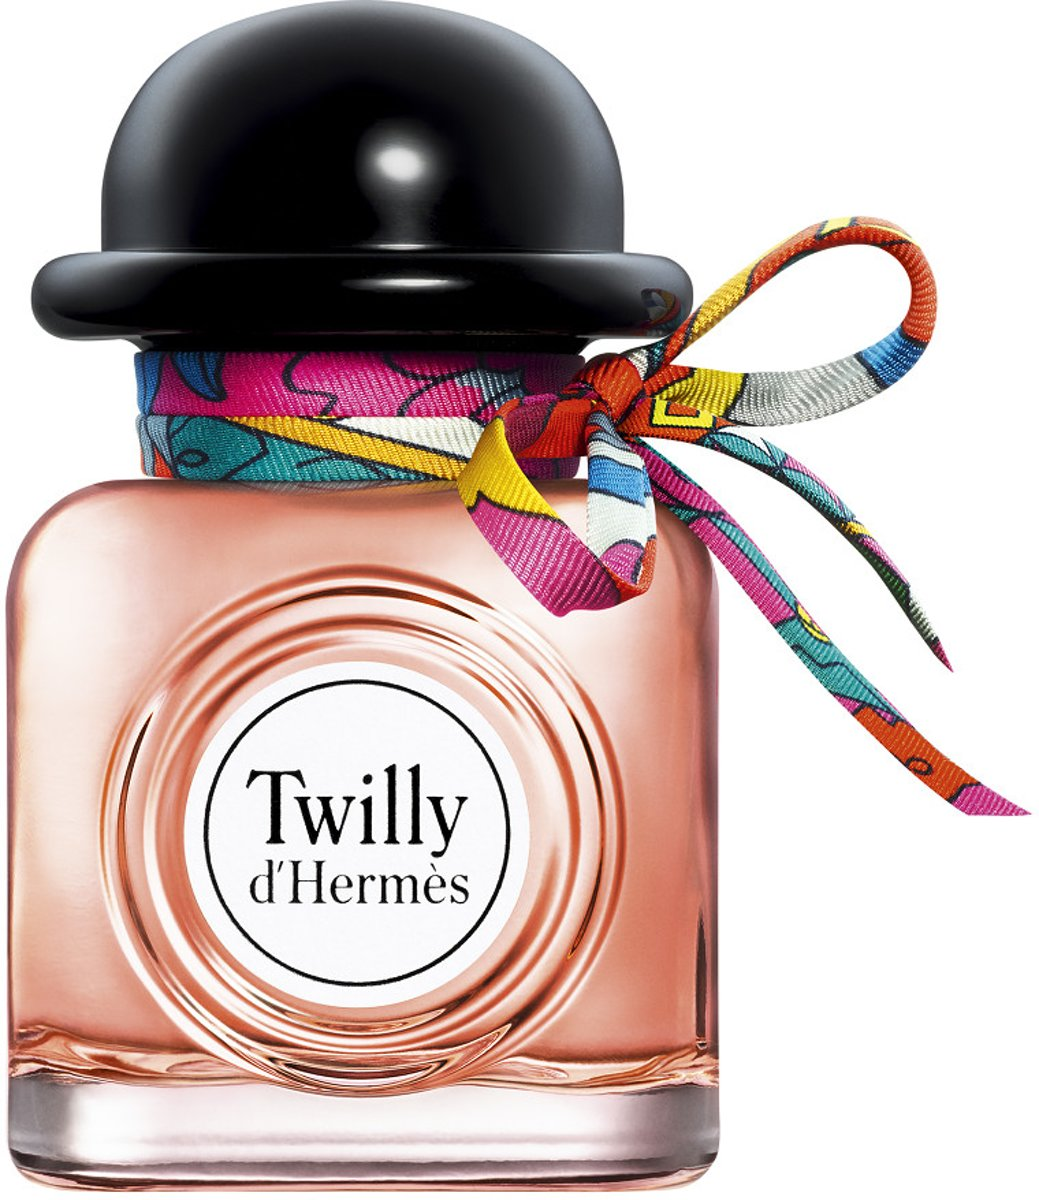 Hermes Twilly dHermes Edp Spray 50 ml